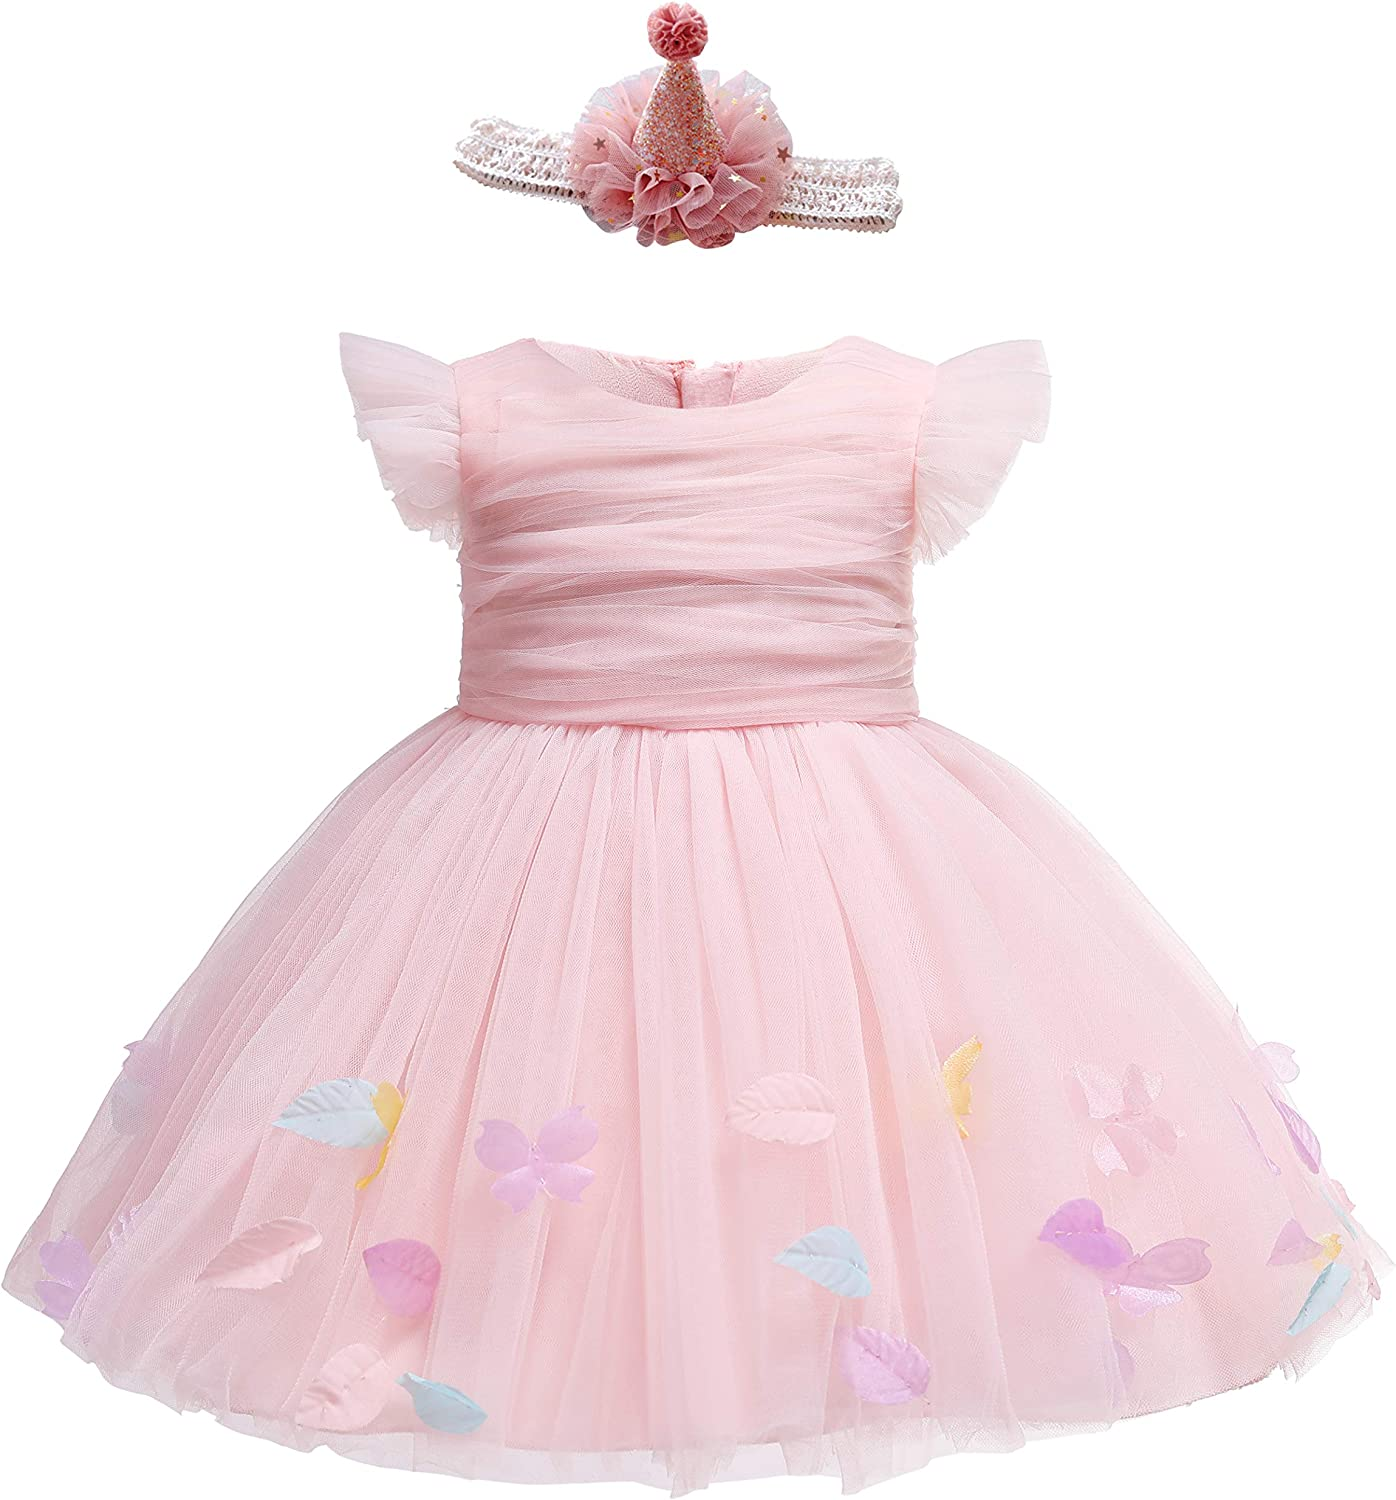 Fort Worth Mall Glamulice Baby Ranking TOP5 Girls Infant Lace Wedding Dresses Princess Party